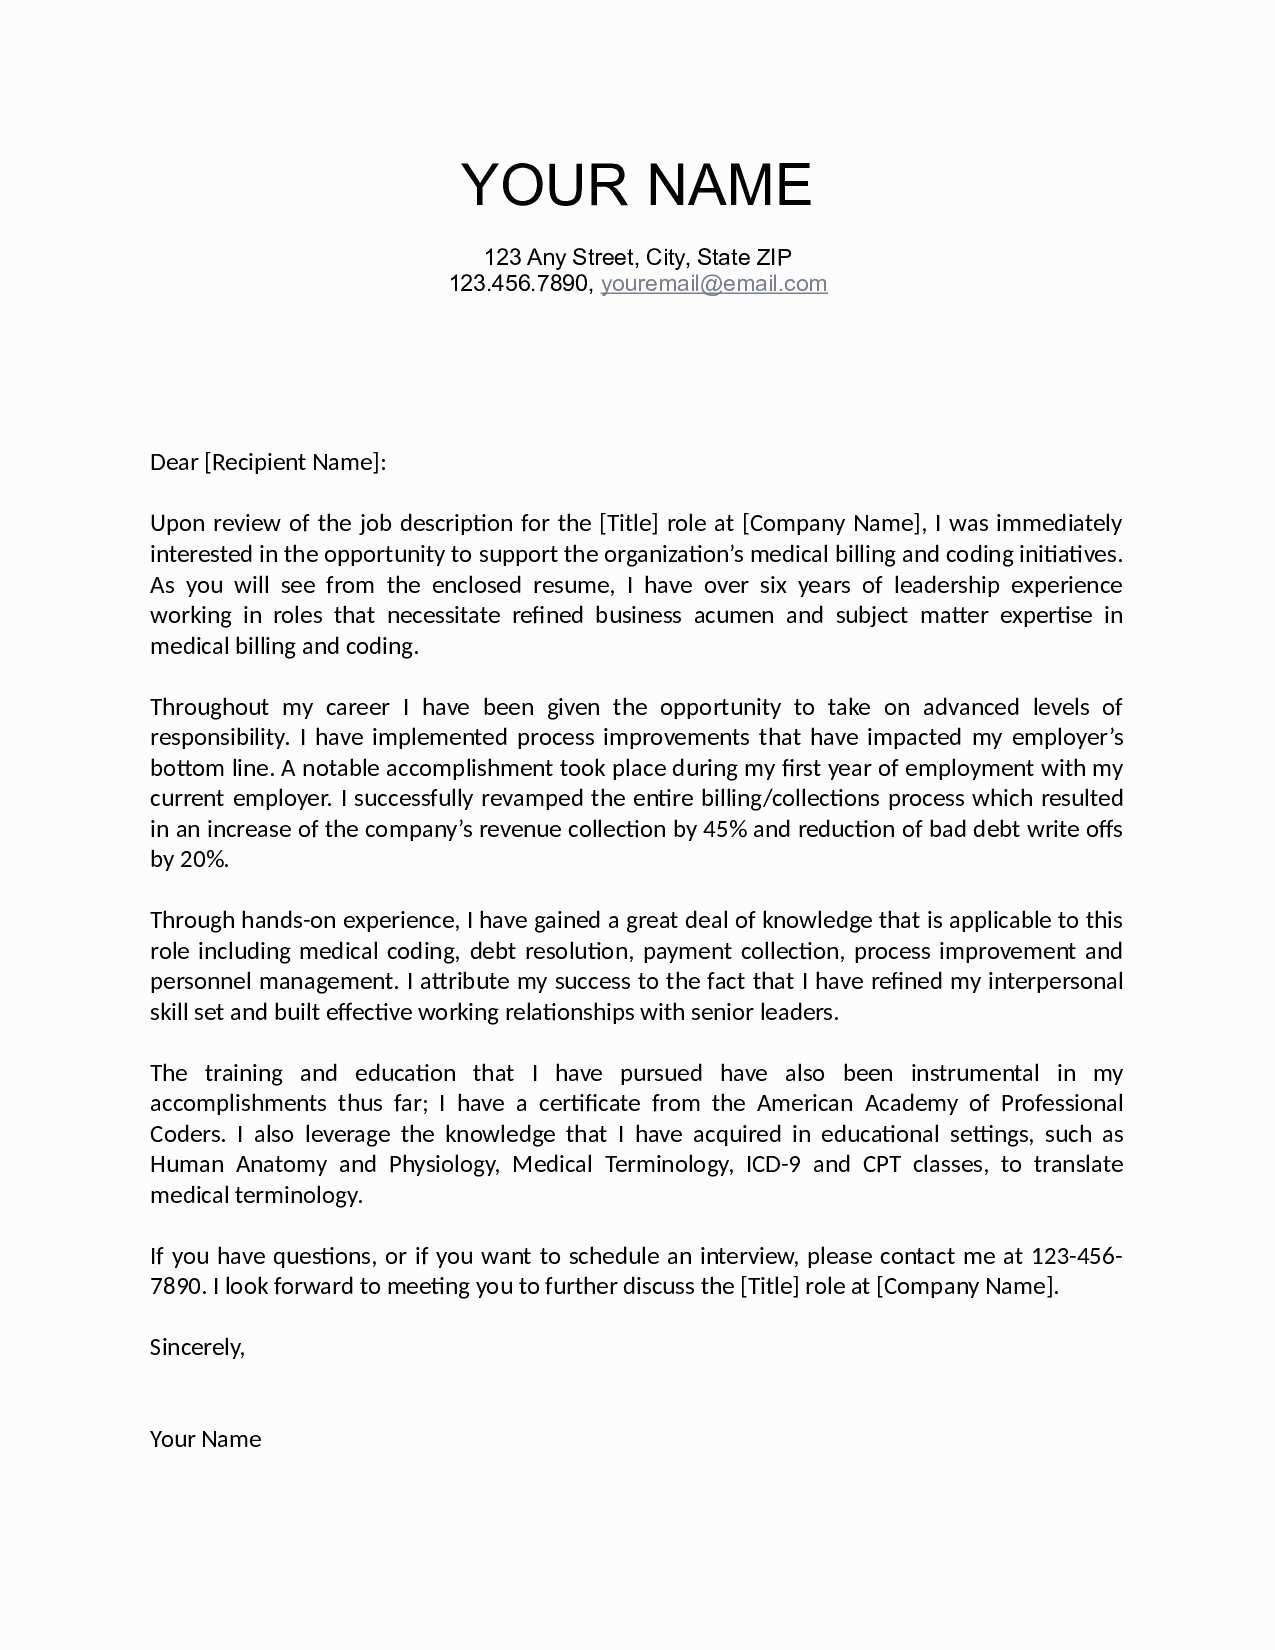 Plain Cover Letter Template - Cover Letter for Oil and Gas Job Save Lovely Job Fer Letter Template